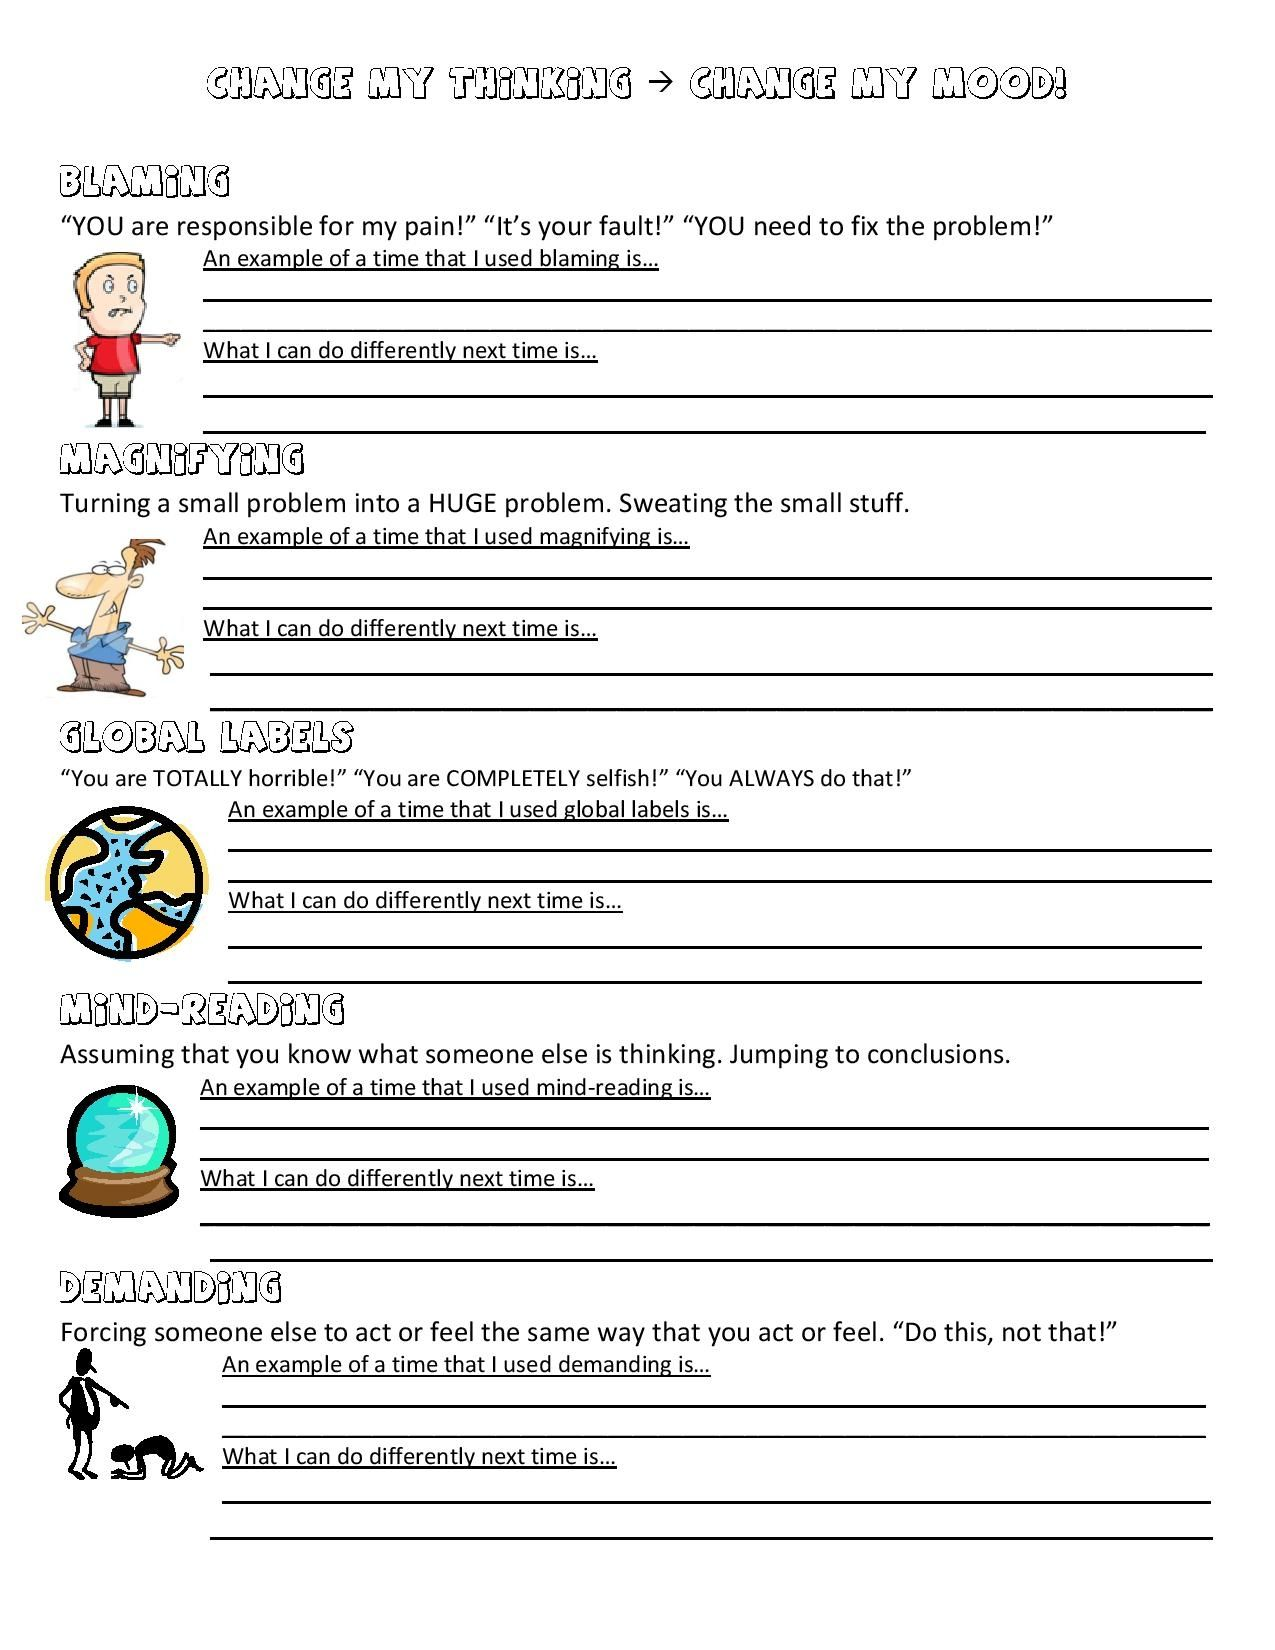 Anger Management Worksheet  Mental Health Experiences  Counseling worksheets, Anger management